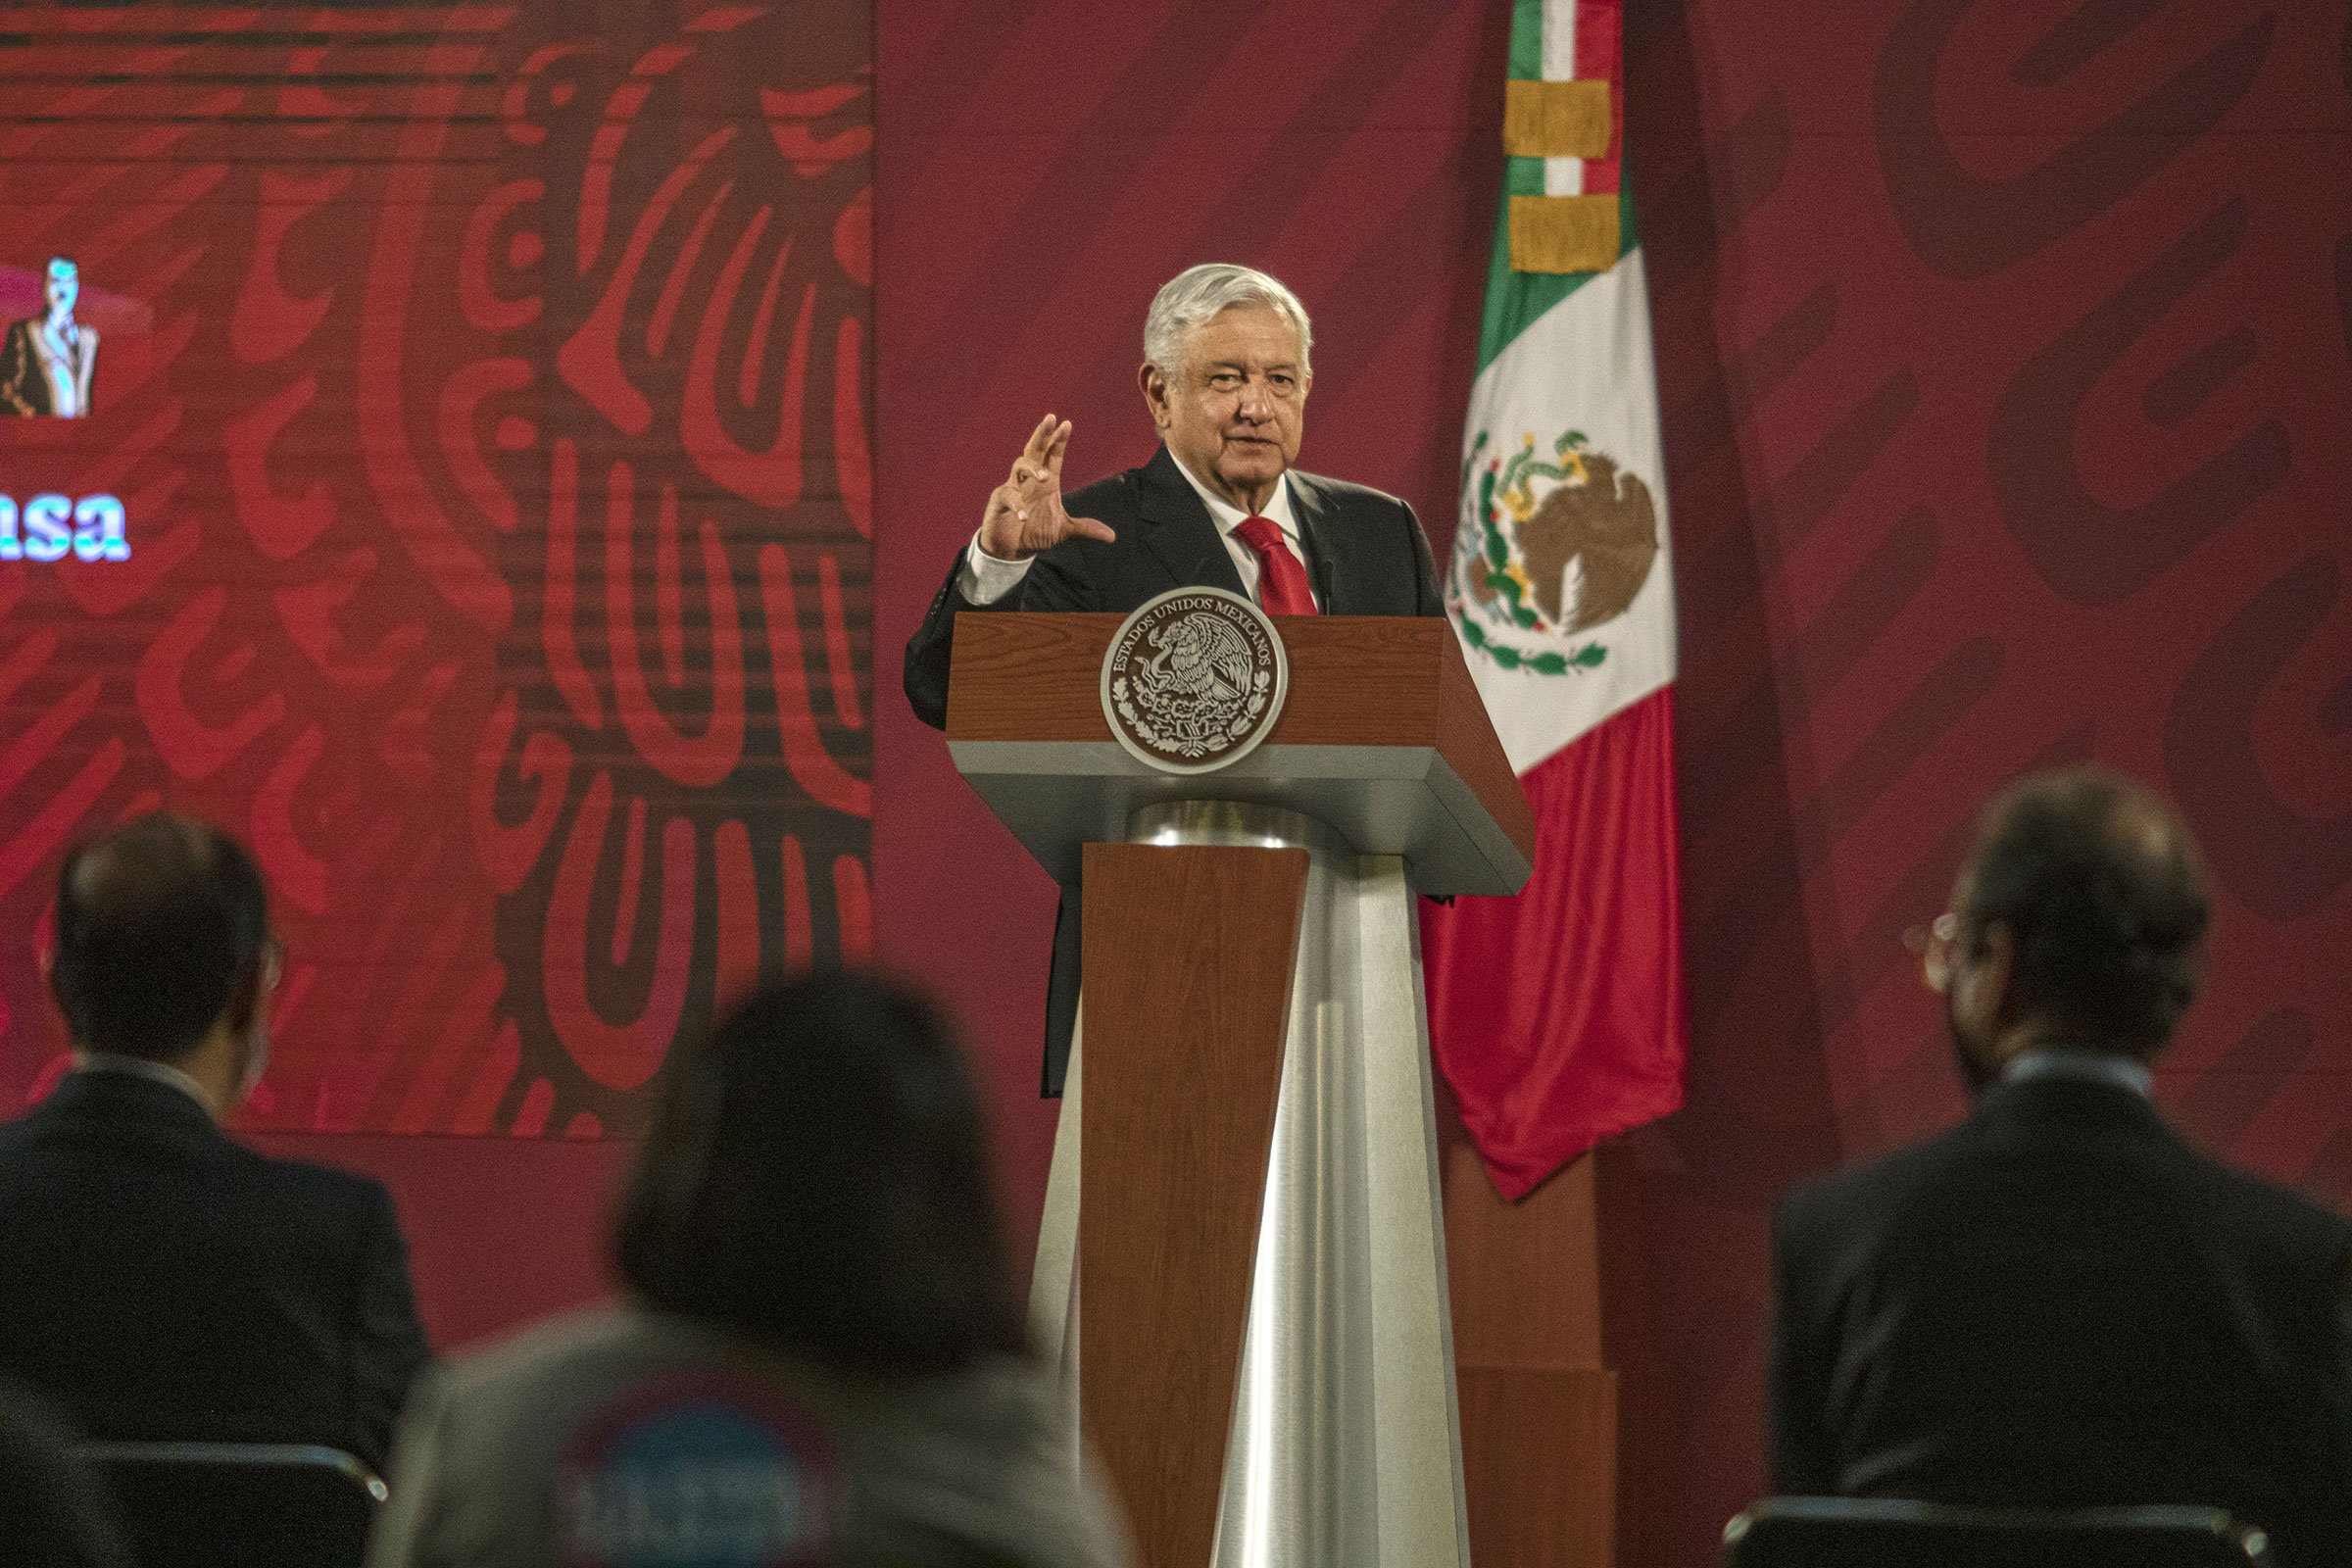 Andres Manuel Lopez Obrador, Mexico's president, speaks during a news conference at the National Palace in Mexico City, on July 22, 2020.